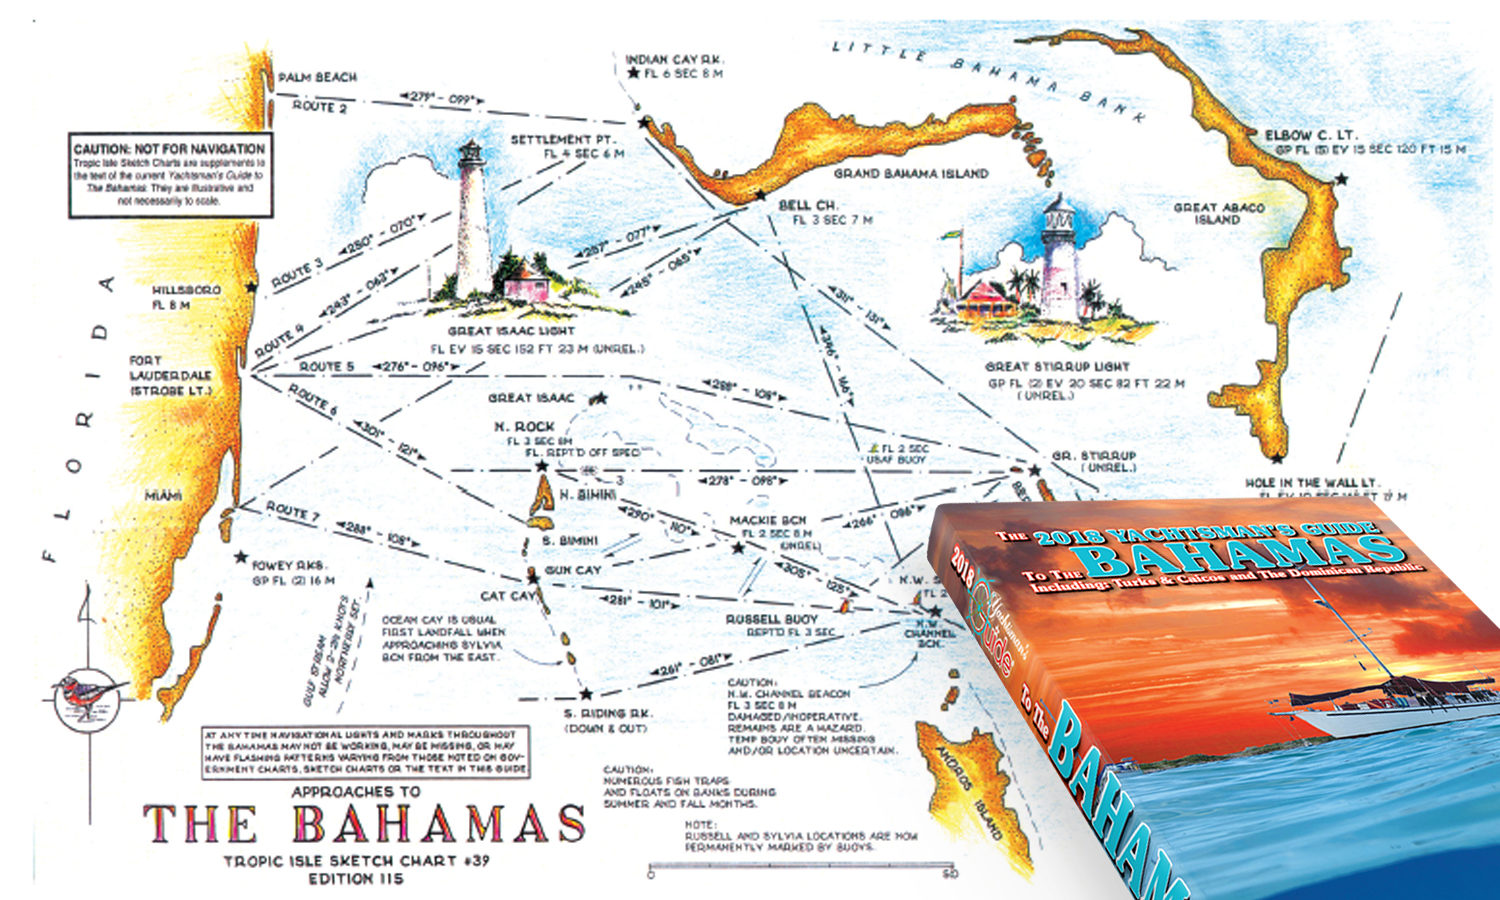 The 2018 Yachtsman's Guide to the Bahamas Is Now Available